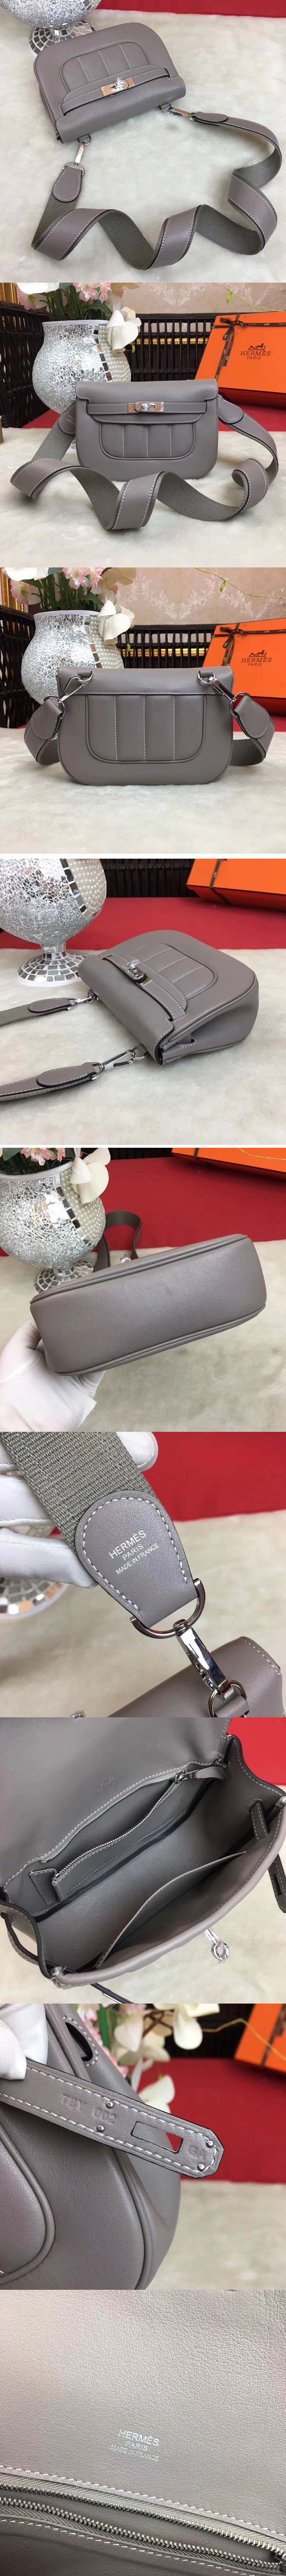 Replica Hermes Berline 20cm Original Swift Leather Bags Grey